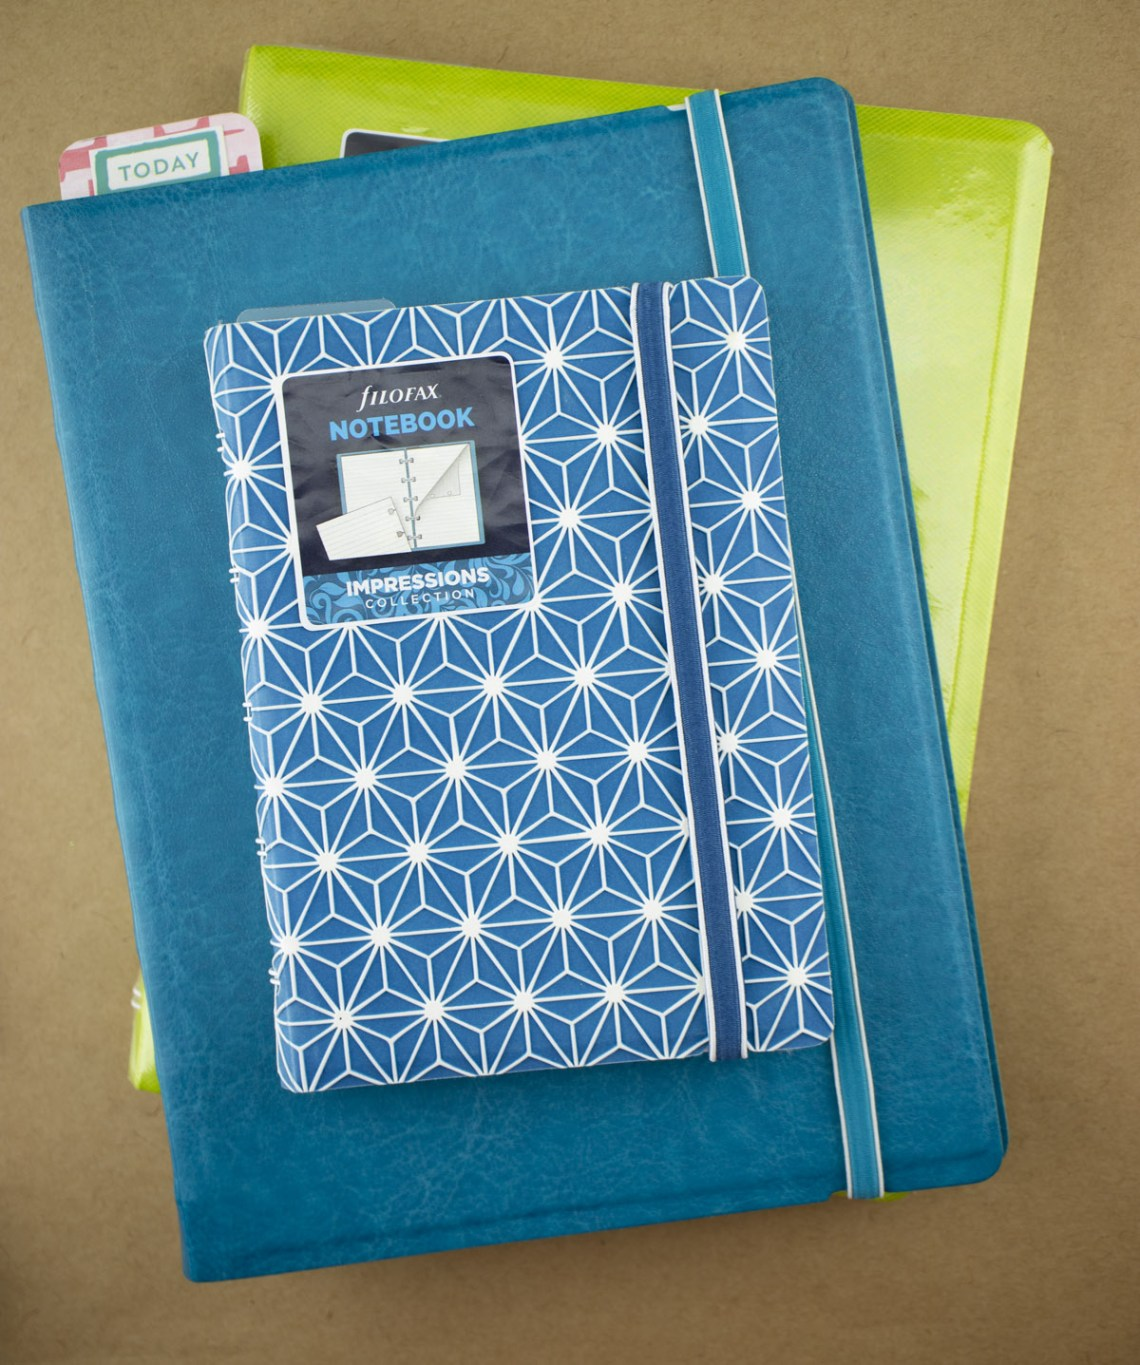 Filofax Notebook stack